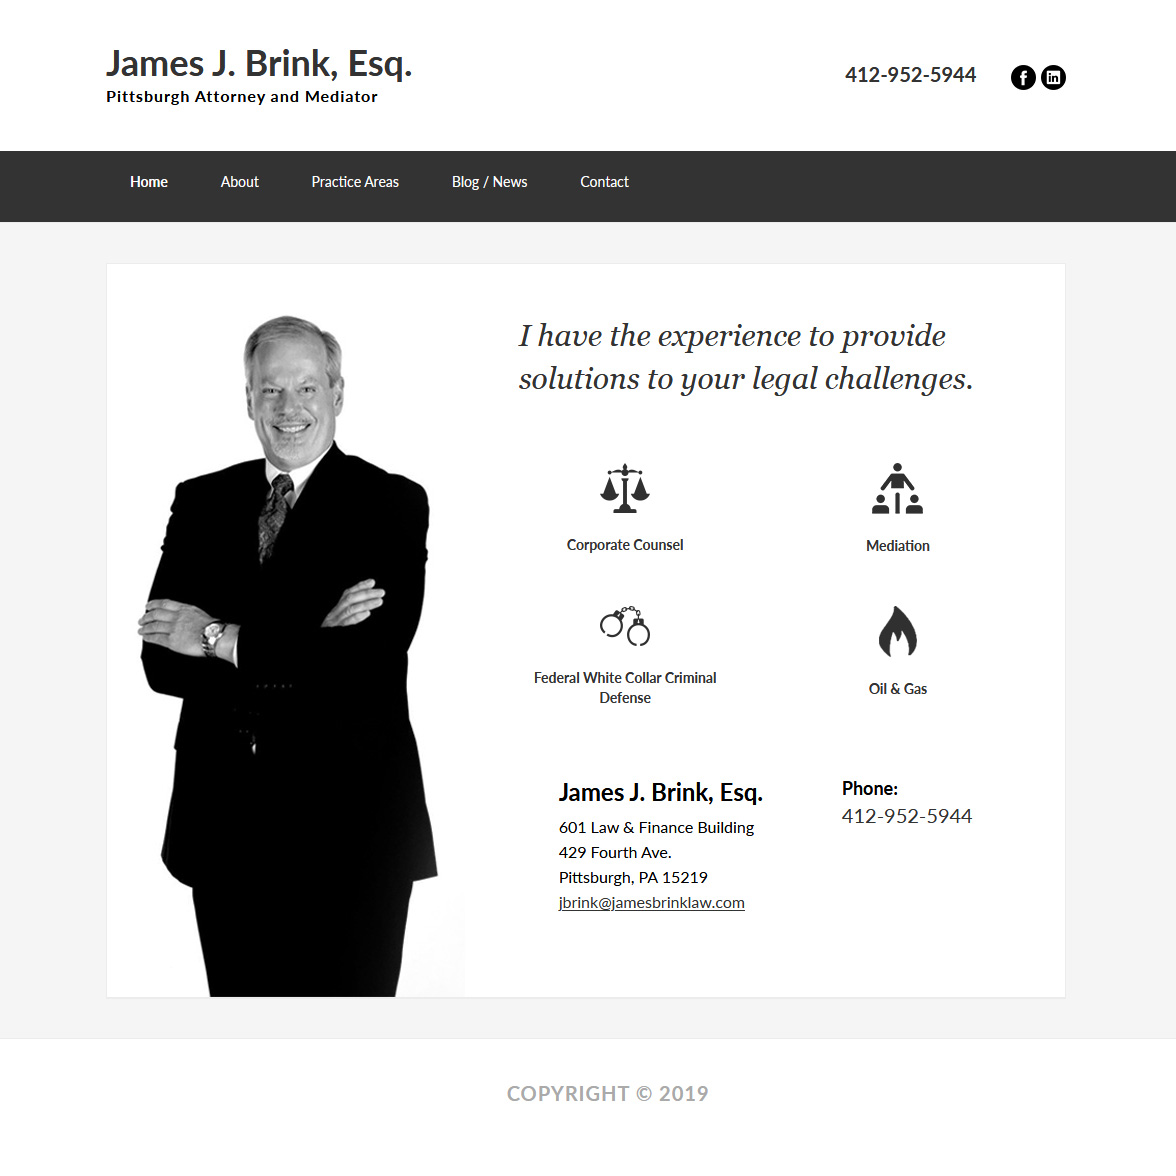 James J. Brink, Esq - lawyers website design